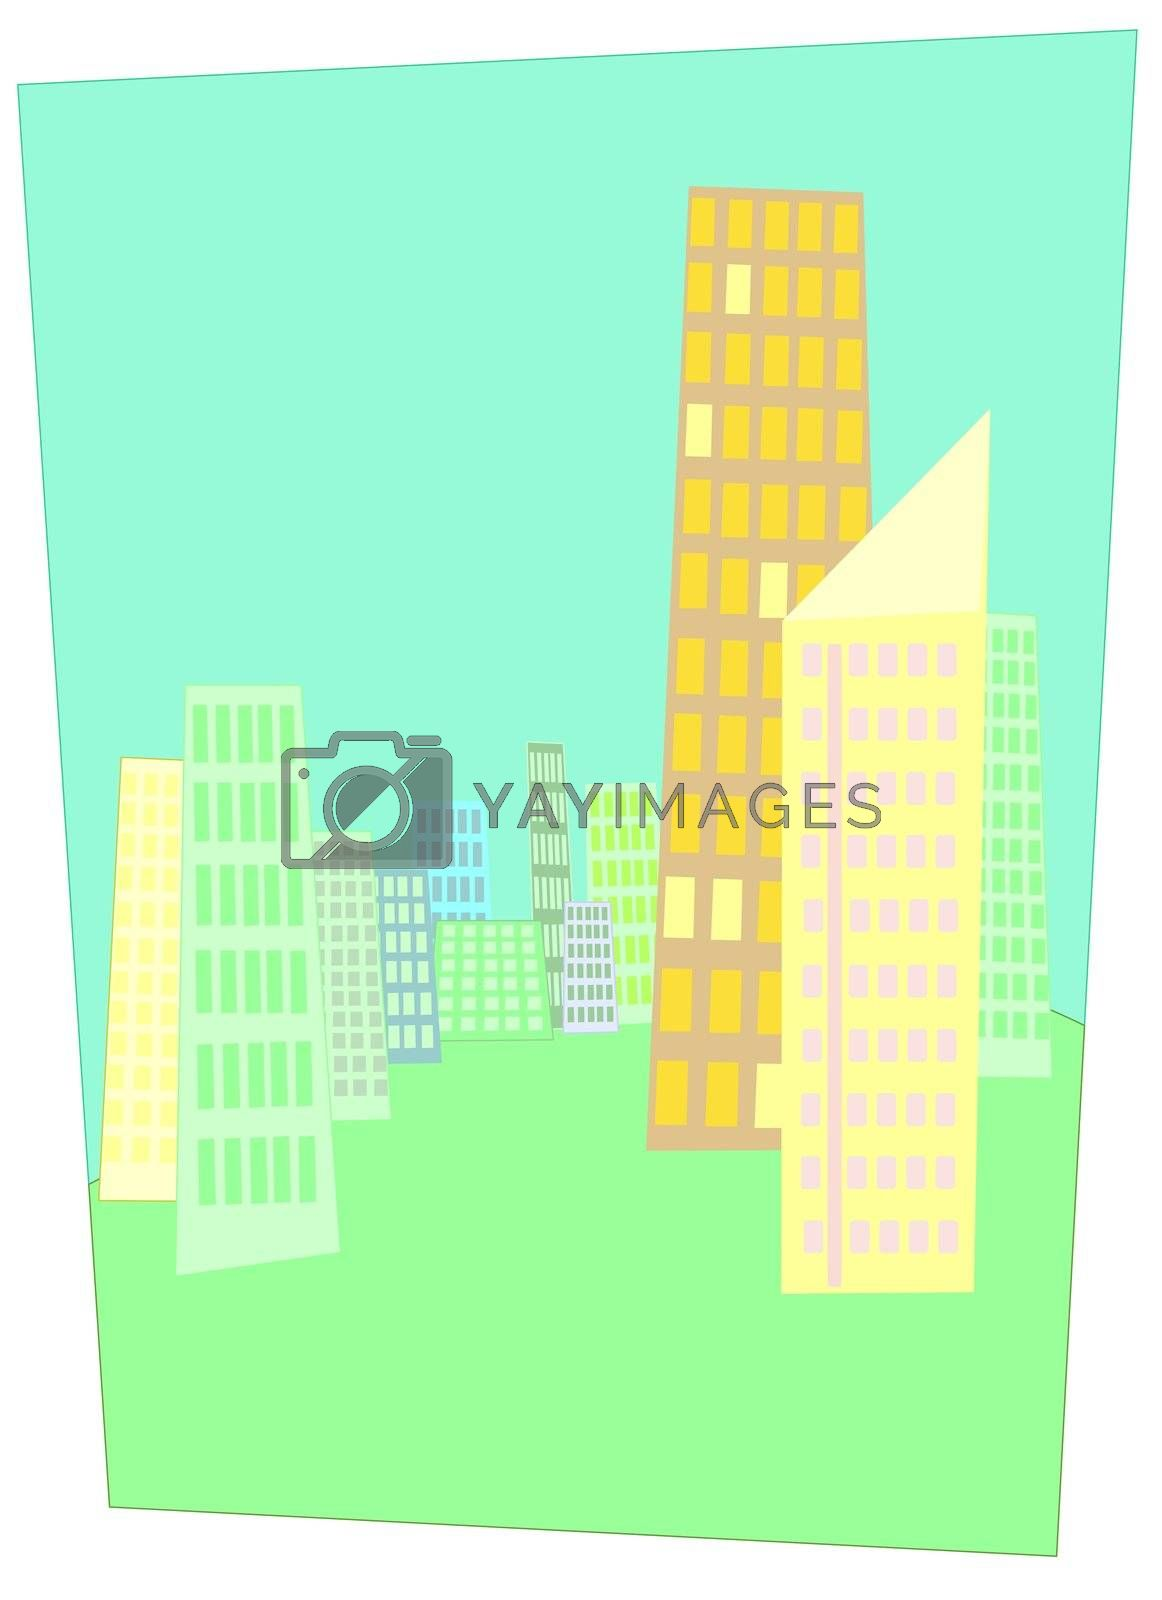 Illustration of a city with skyscrapers in springtime colors